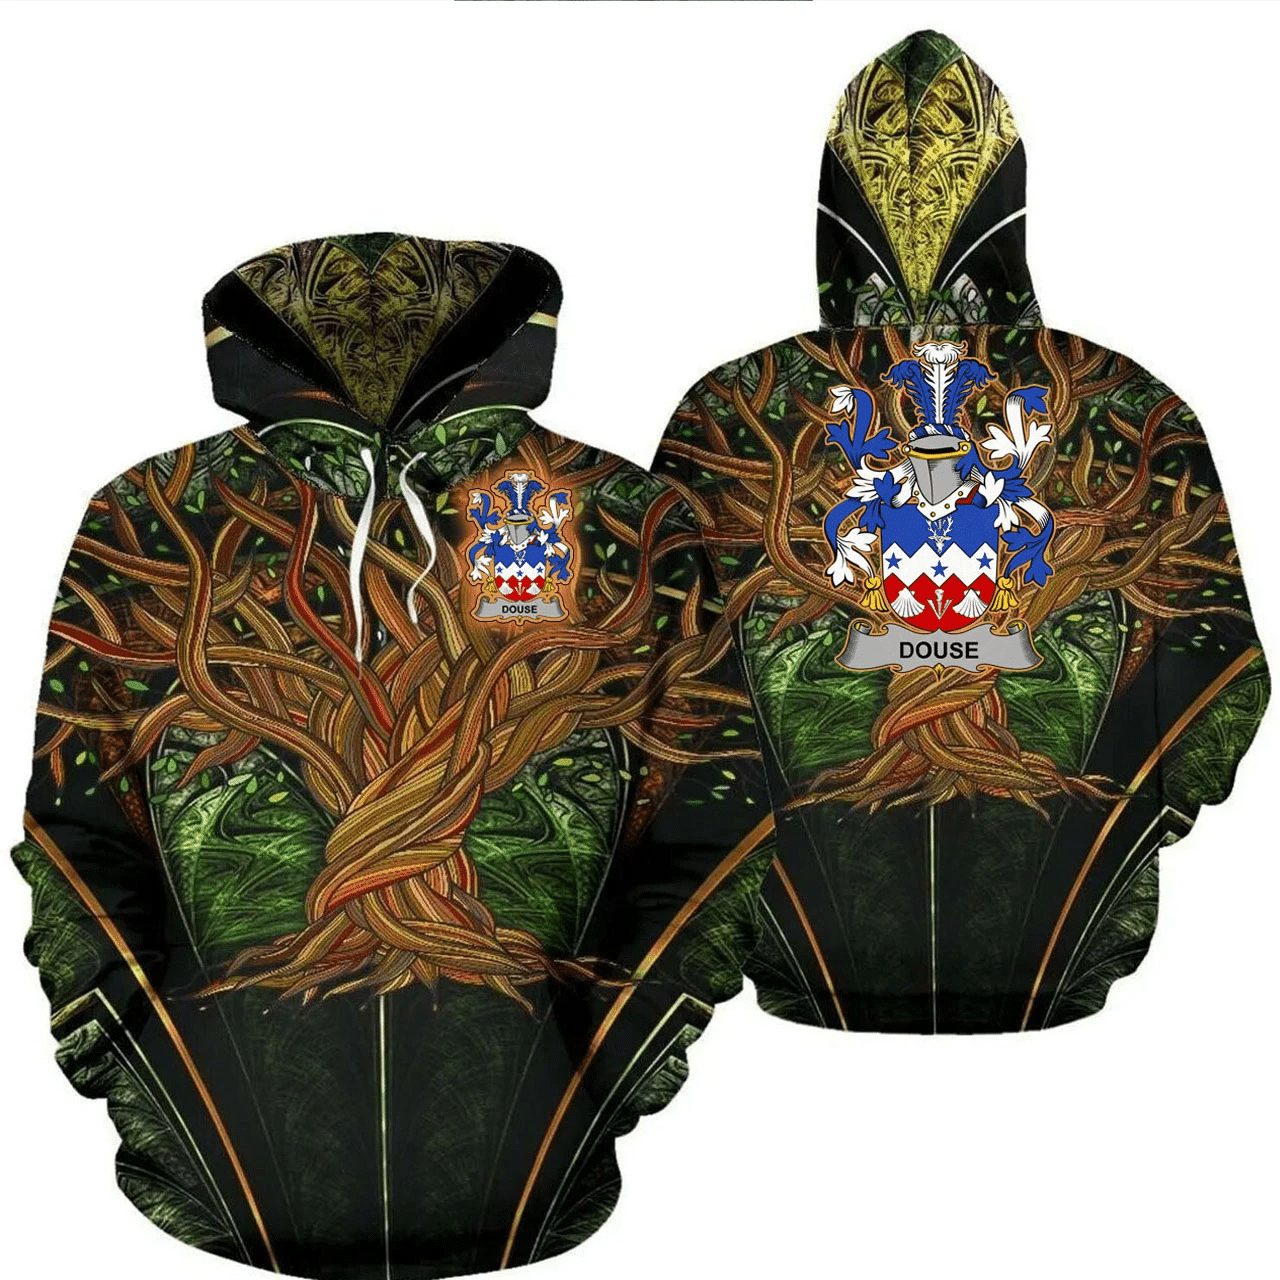 1stIreland Ireland Hoodie - Douse or Dowse Irish Family Crest Hoodie - Tree Of Life A7